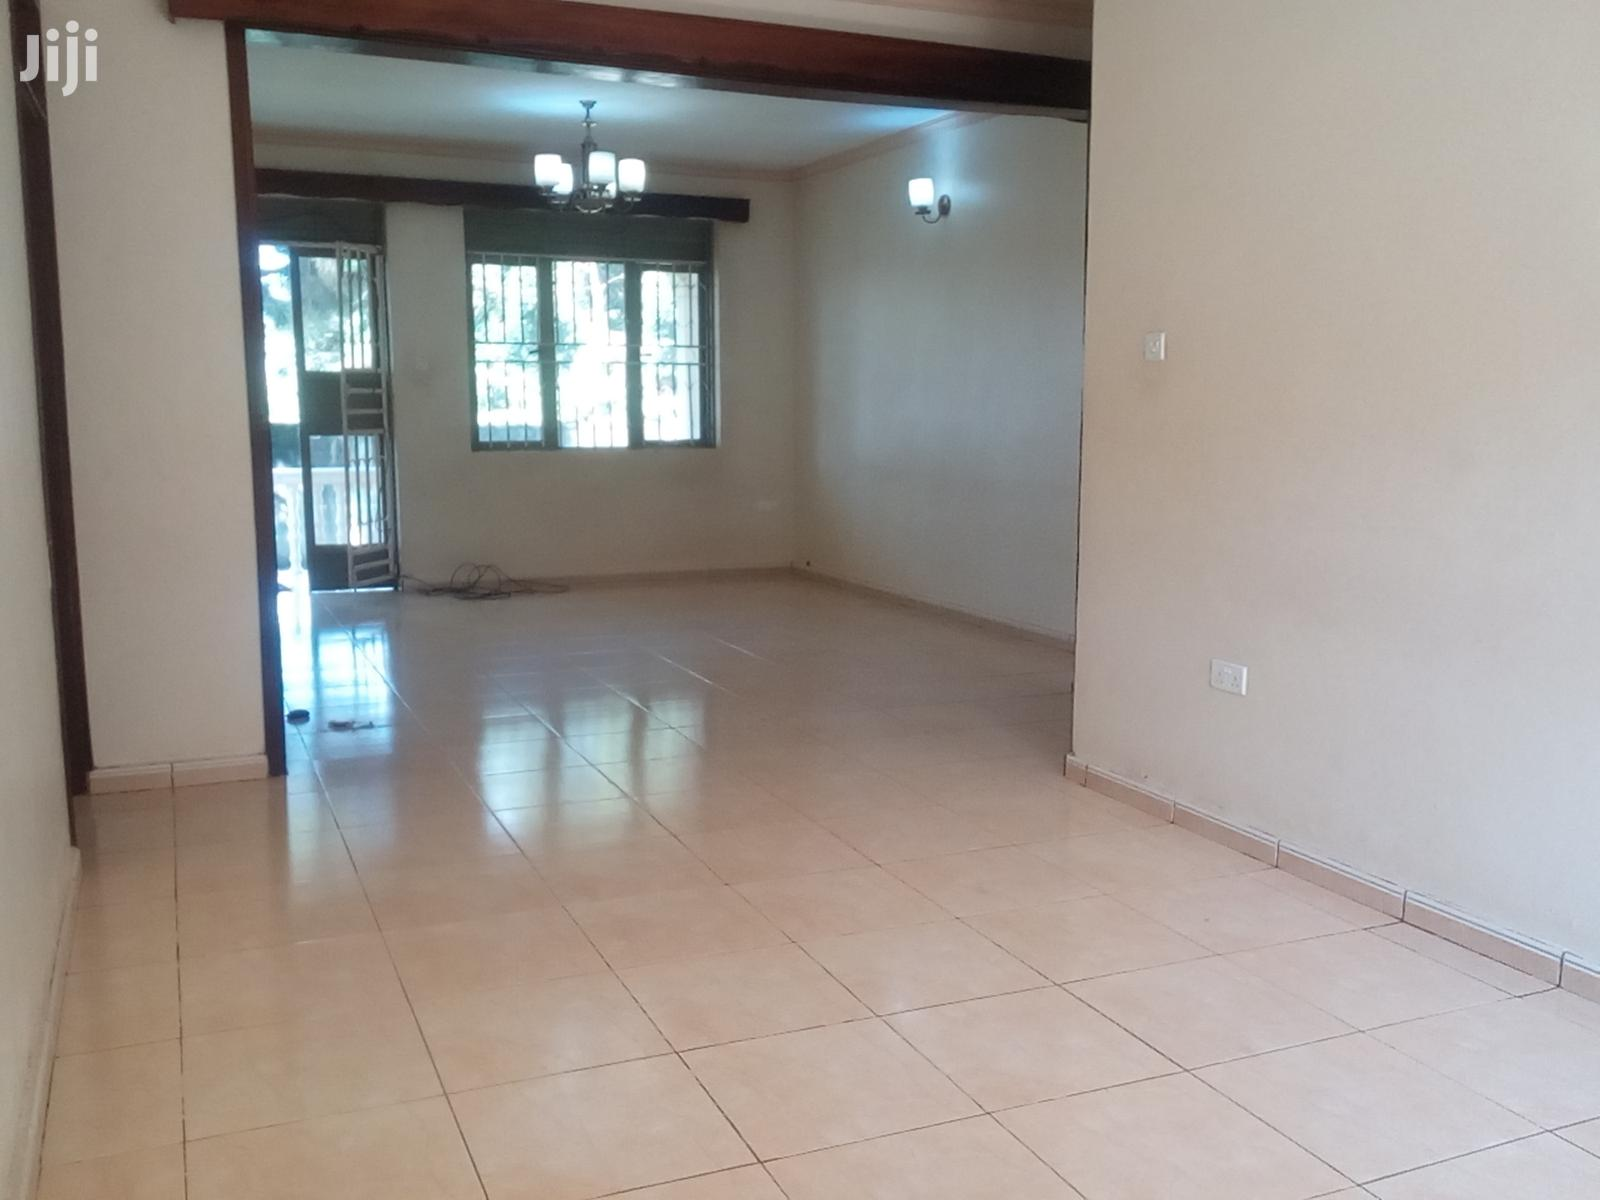 Three Bedroom House In Kirinya Kito Road For Rent | Houses & Apartments For Rent for sale in Kampala, Central Region, Uganda